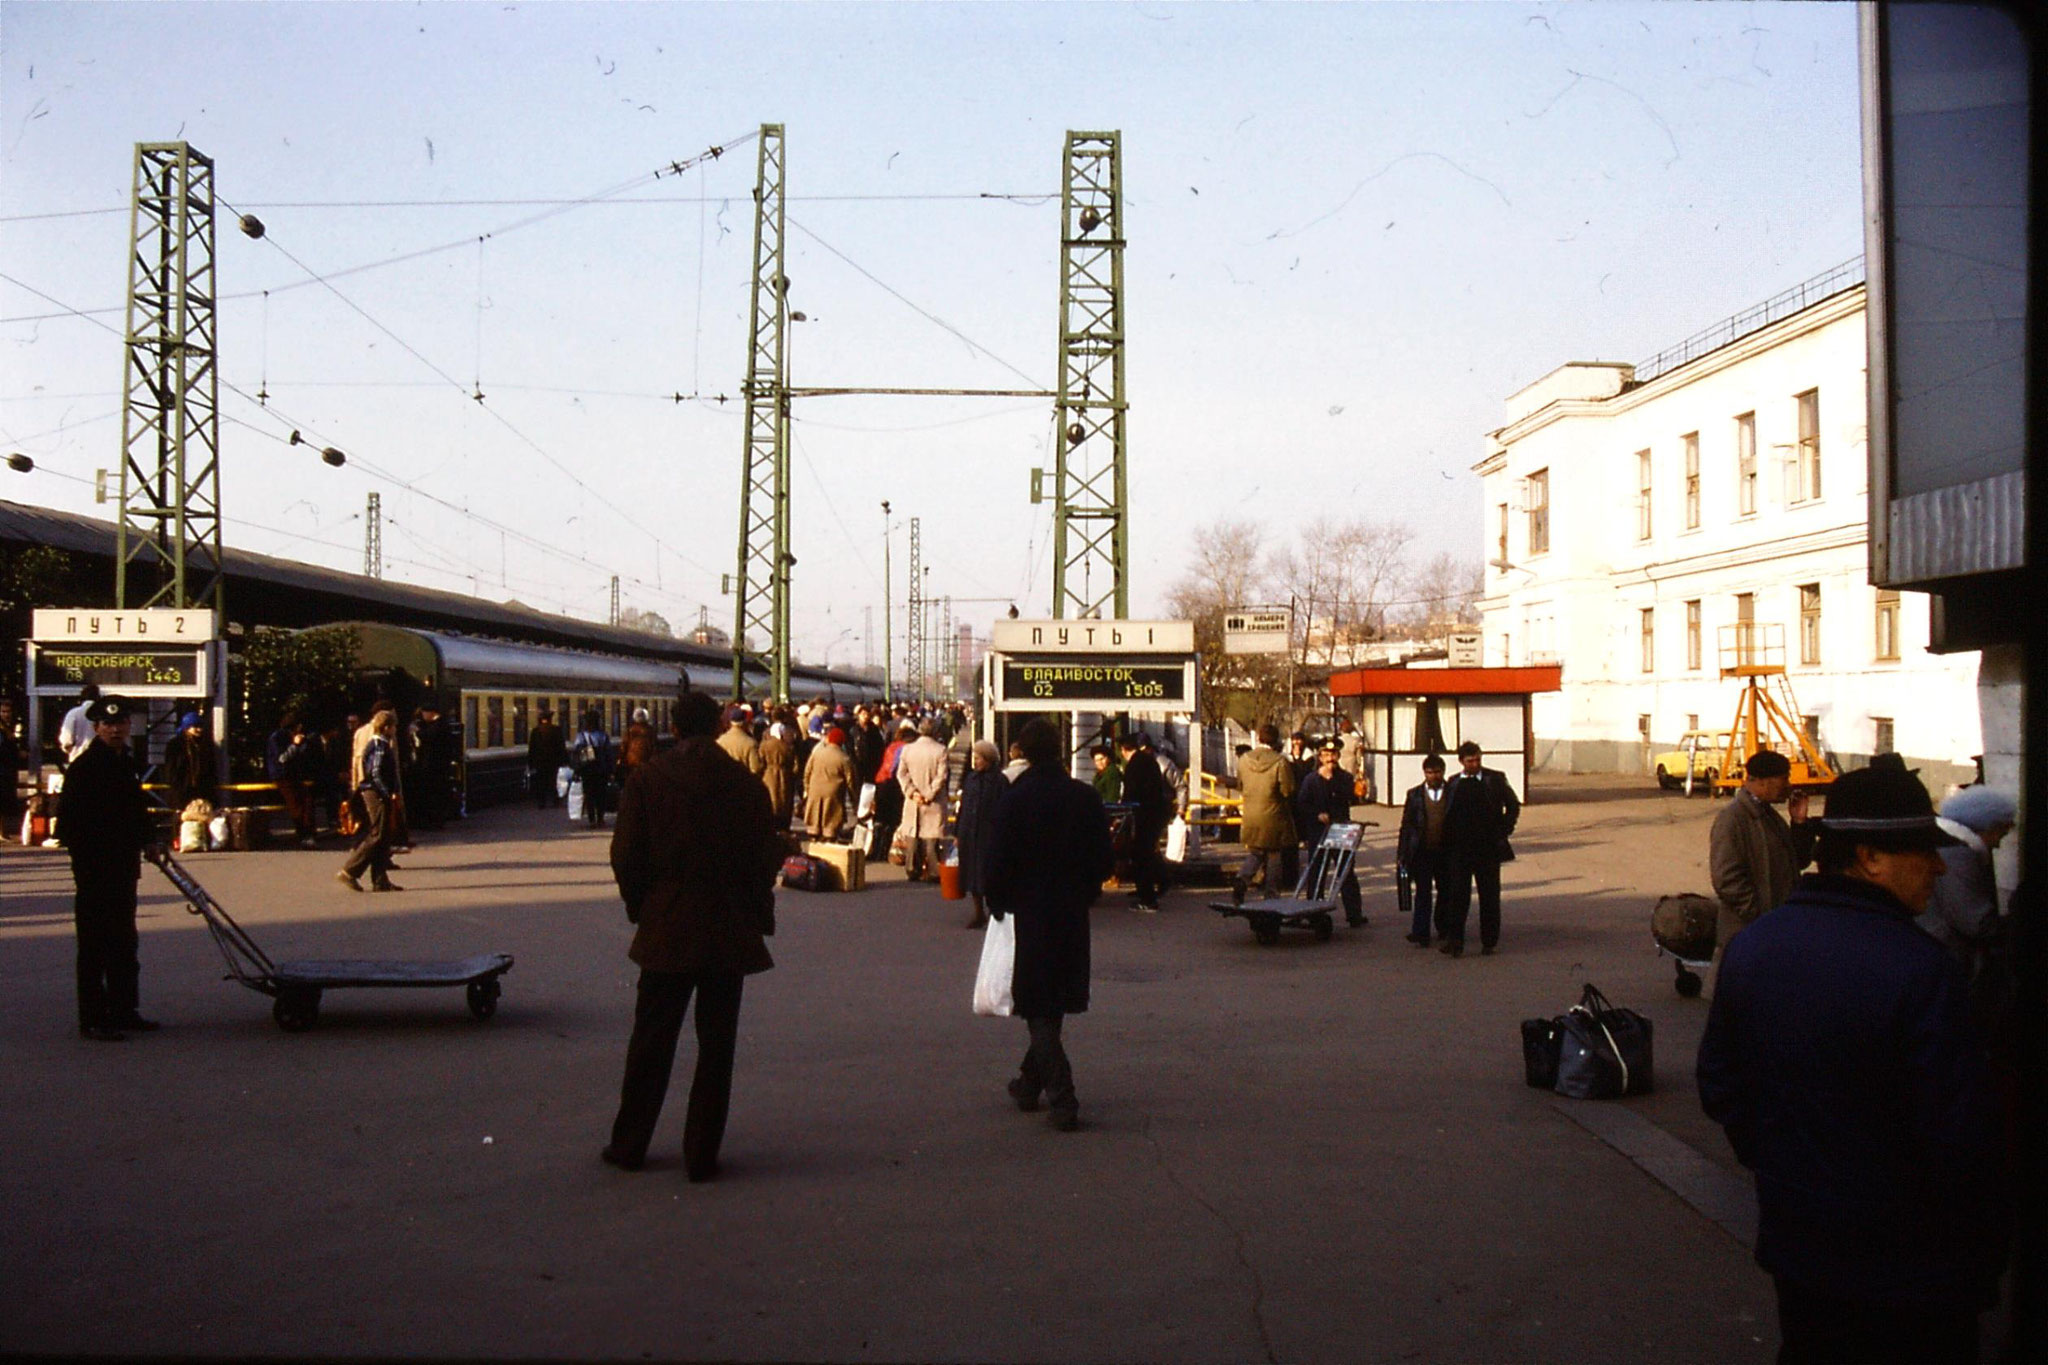 18/10/1988: 15: Moscow Station